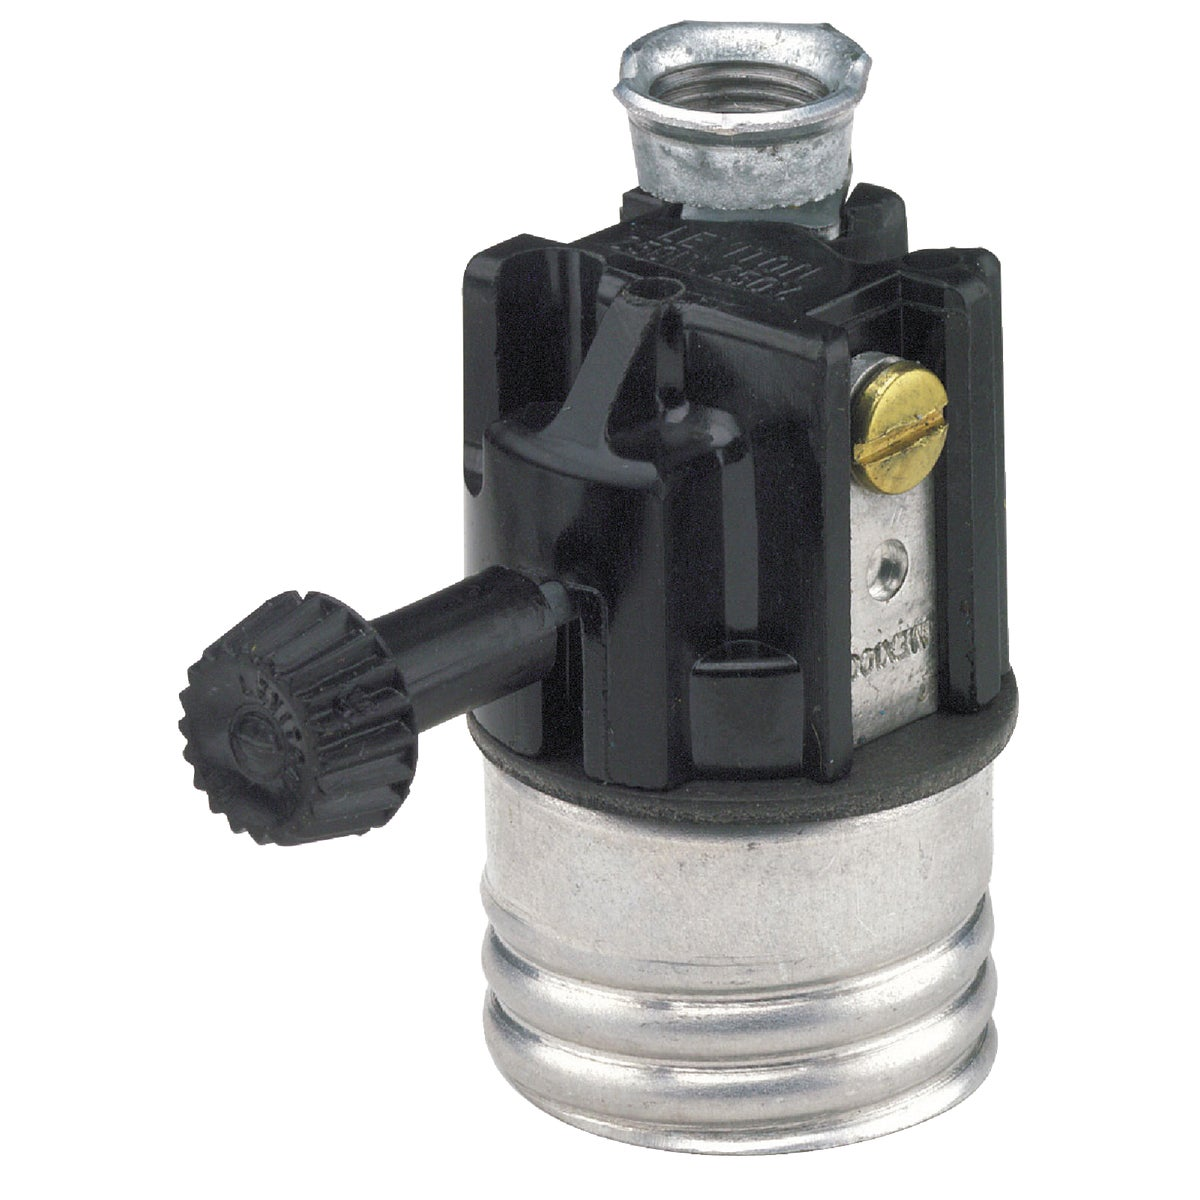 INTERIOR SOCKET - 7098 by Leviton Mfg Co